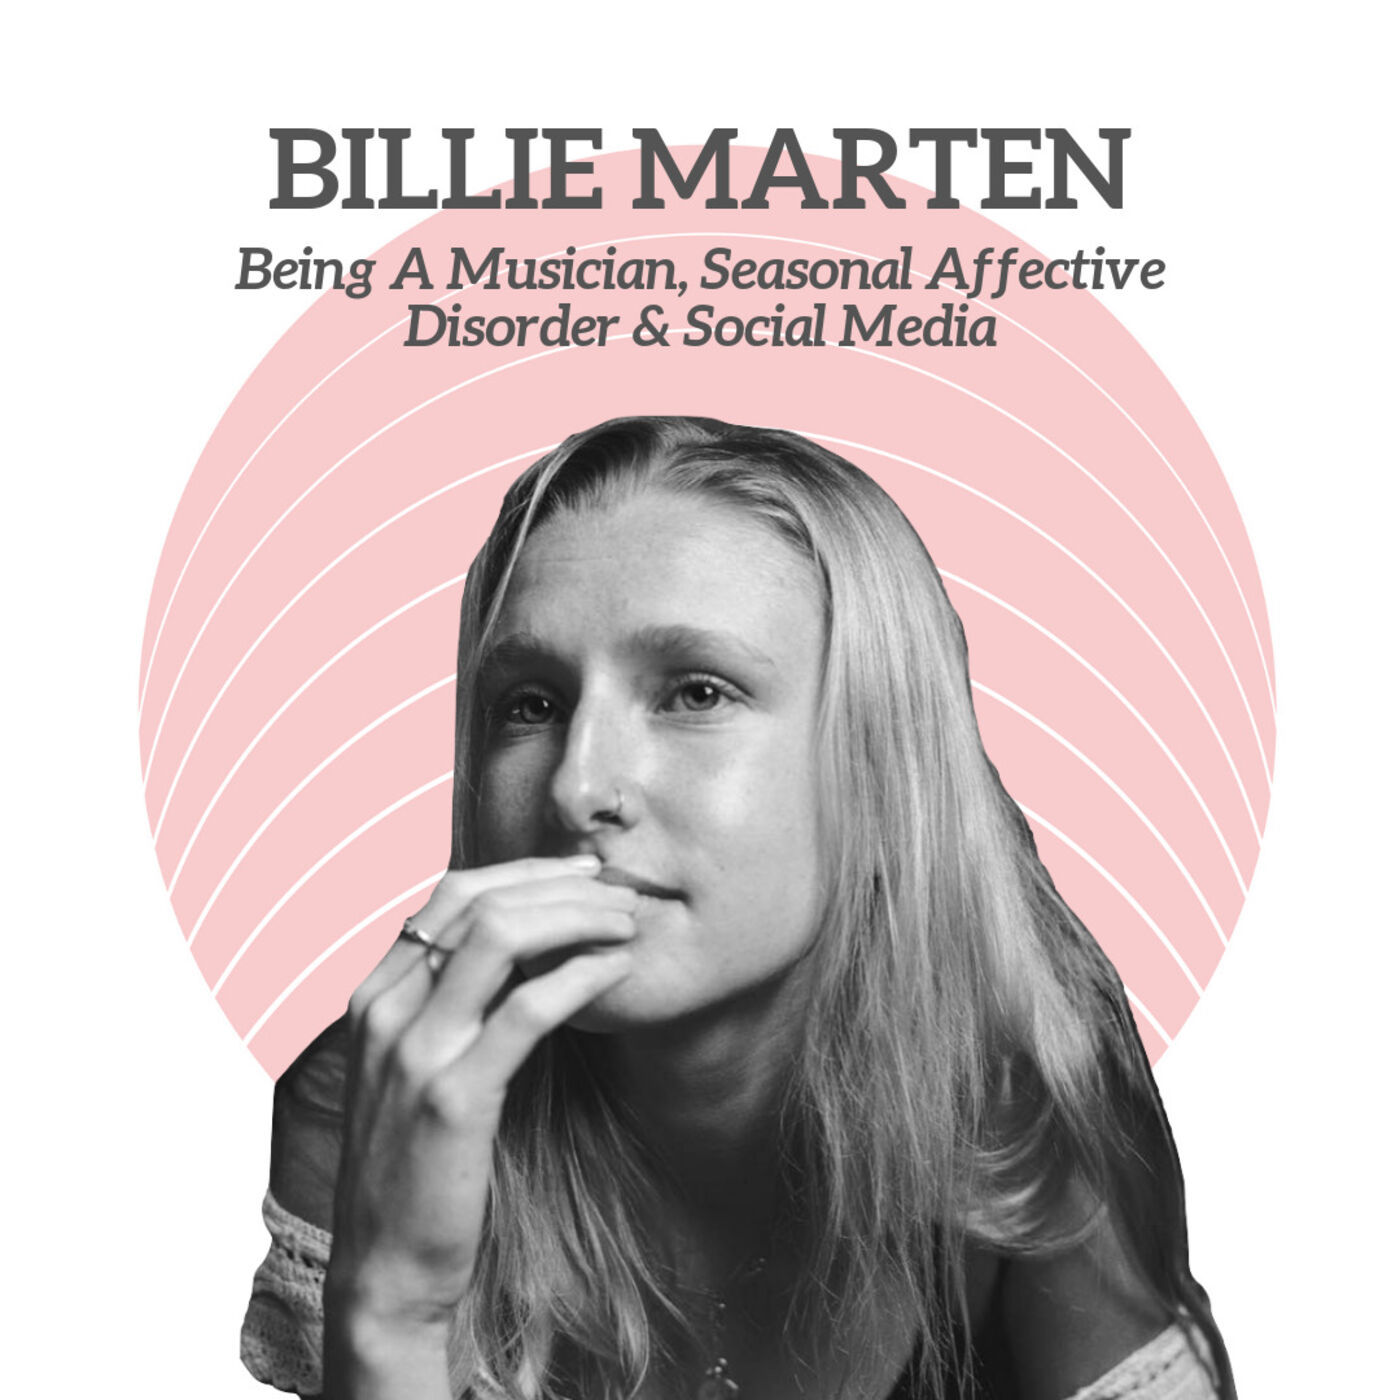 Billie Marten - Being a Musician, Seasonal Affective Disorder & Social Media